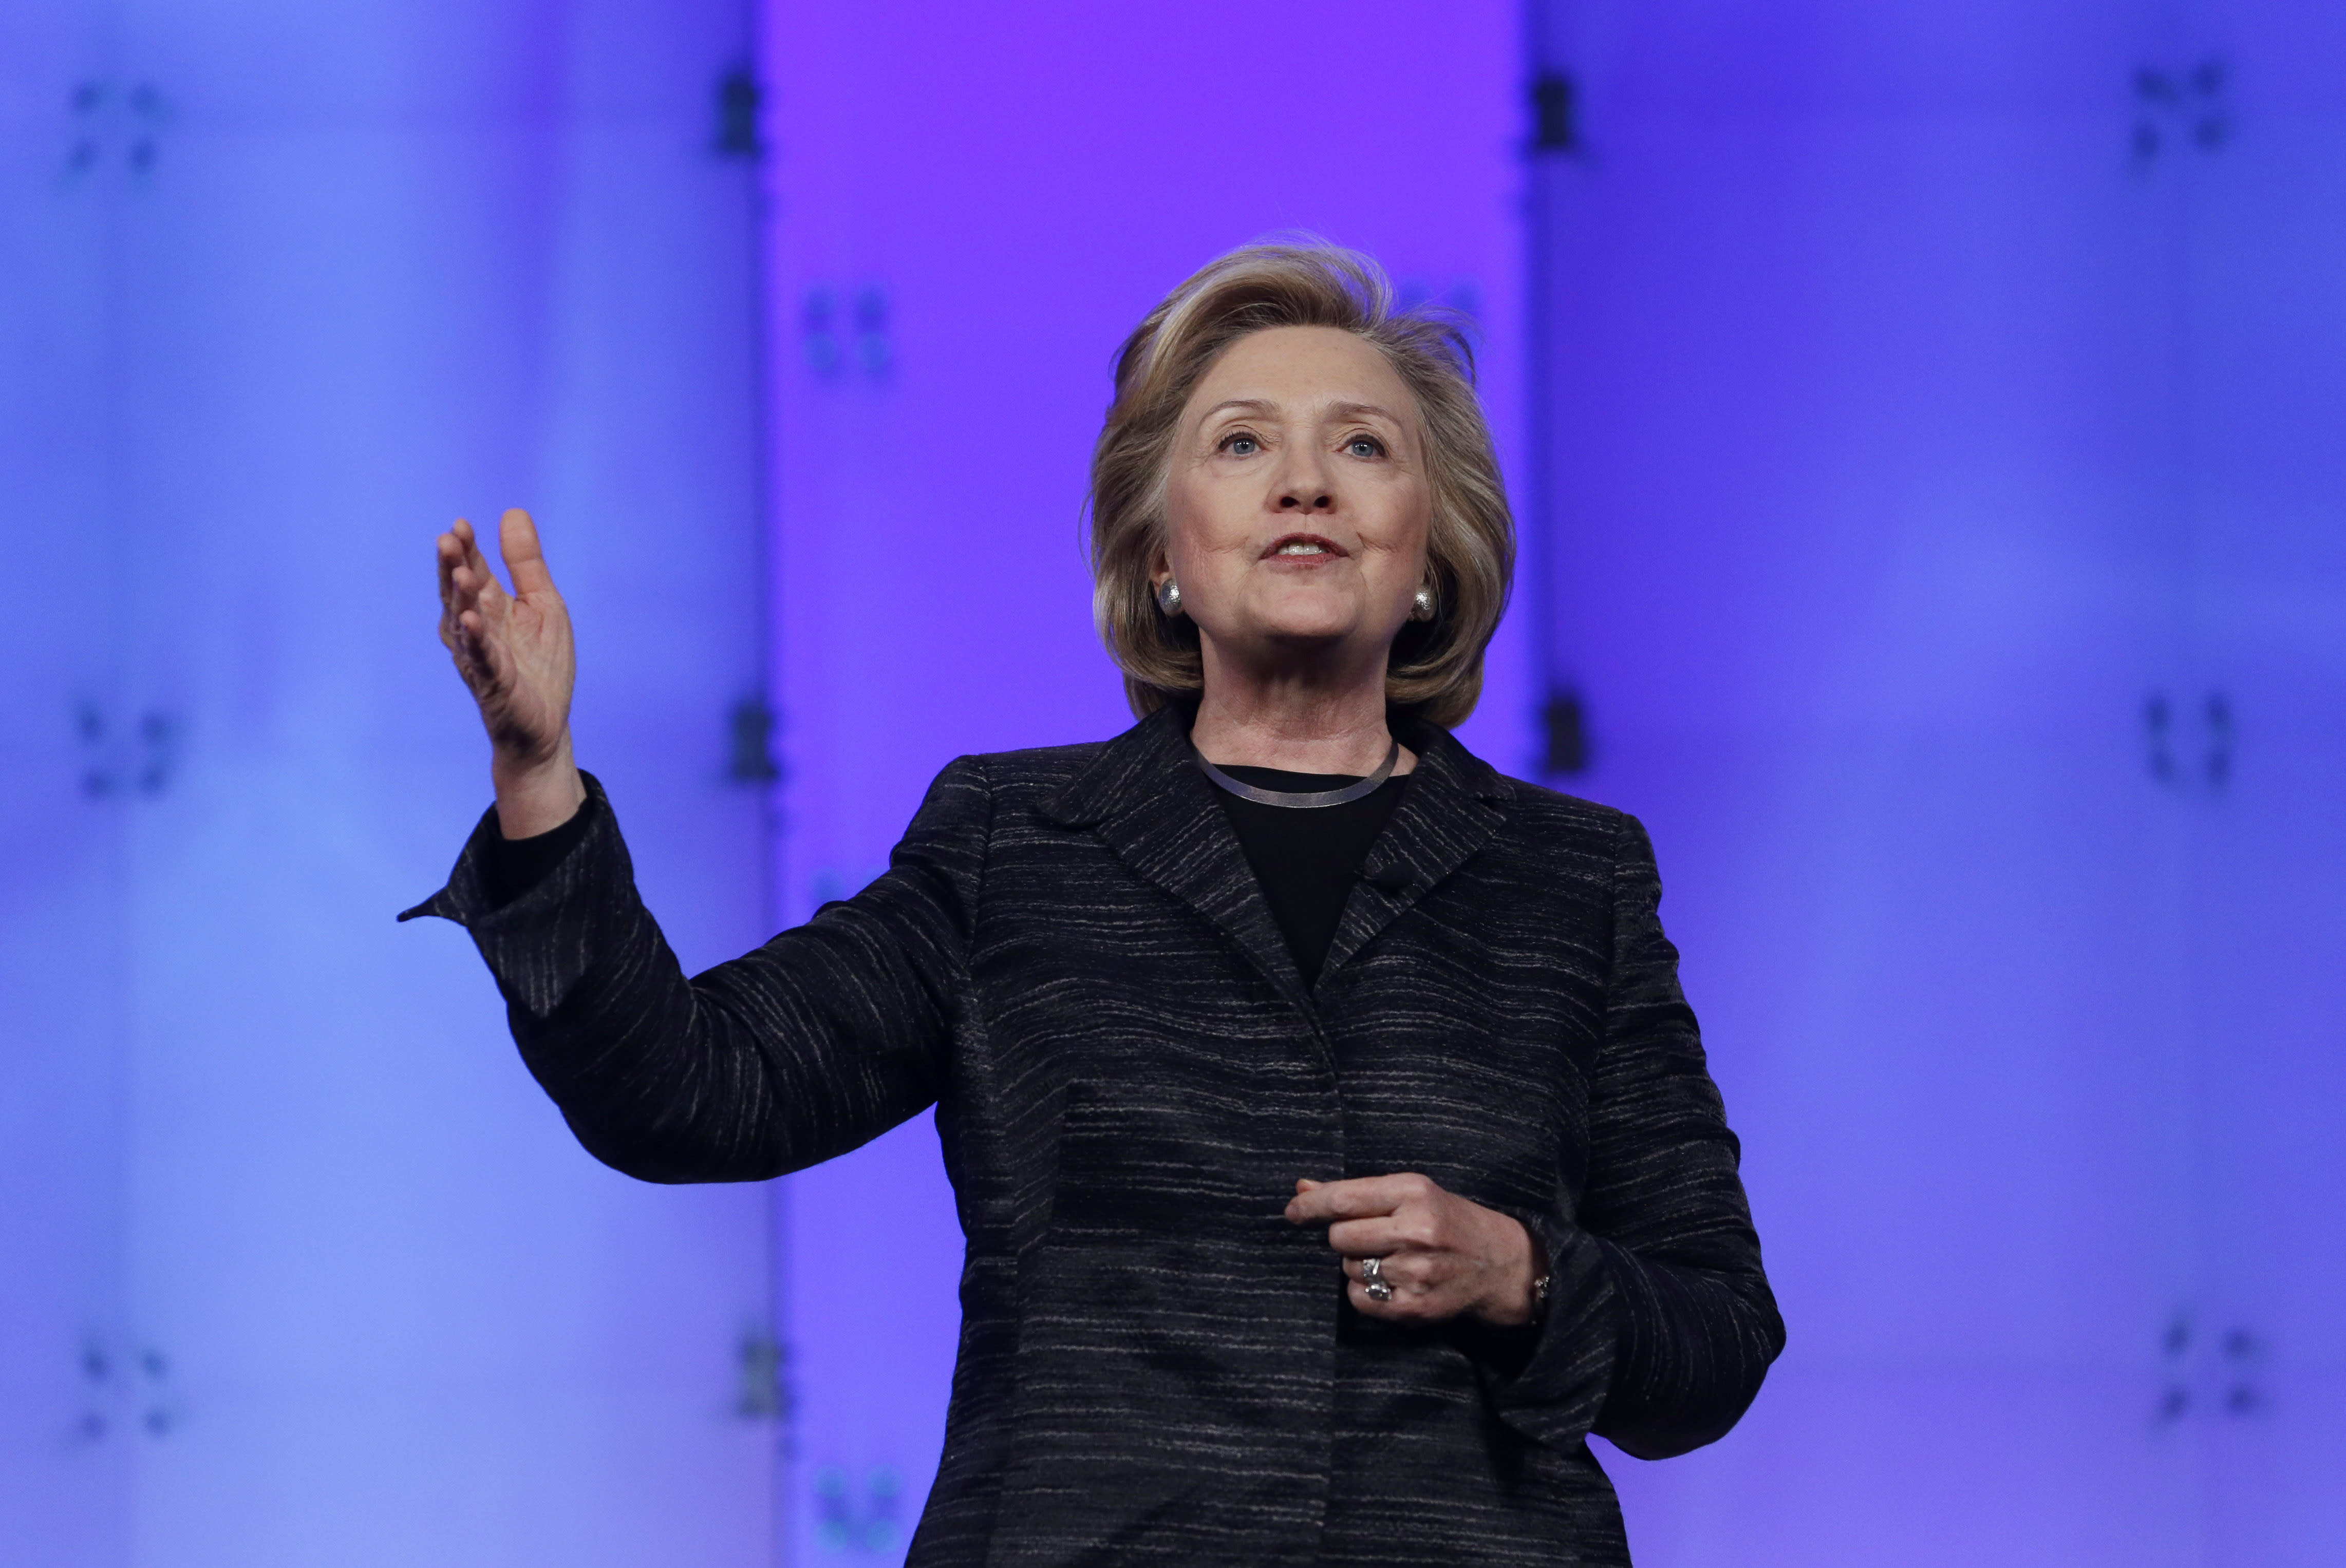 Clinton says she would push for inclusive problem-solving